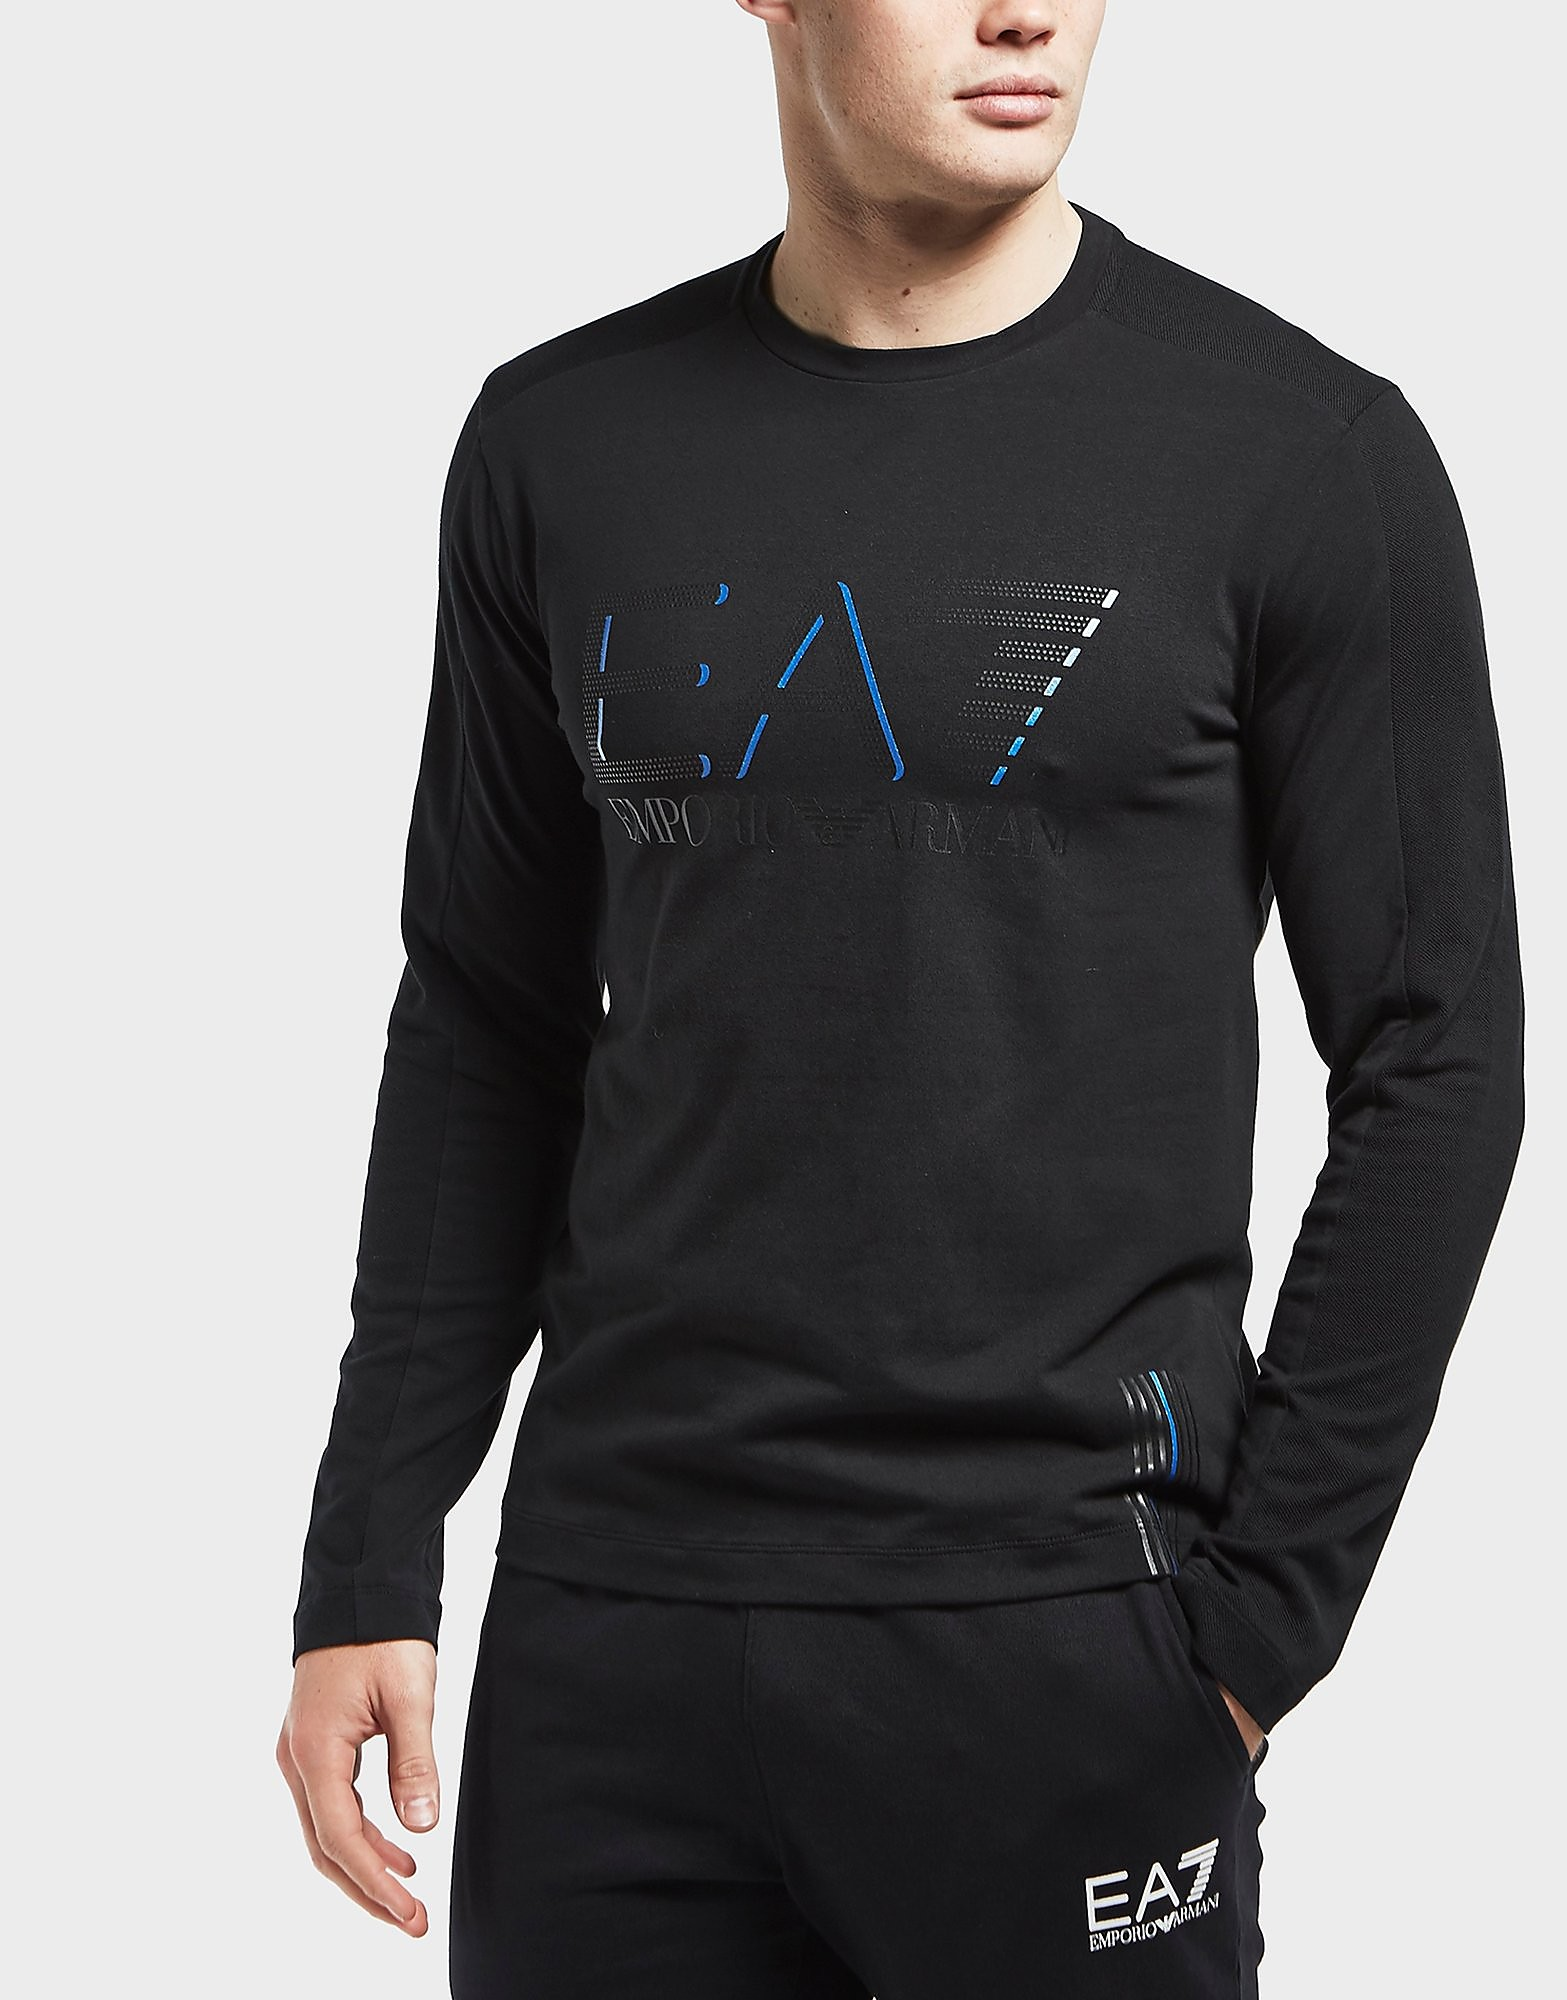 Emporio Armani EA7 Evo Plus Long Sleeve Crew T-Shirt